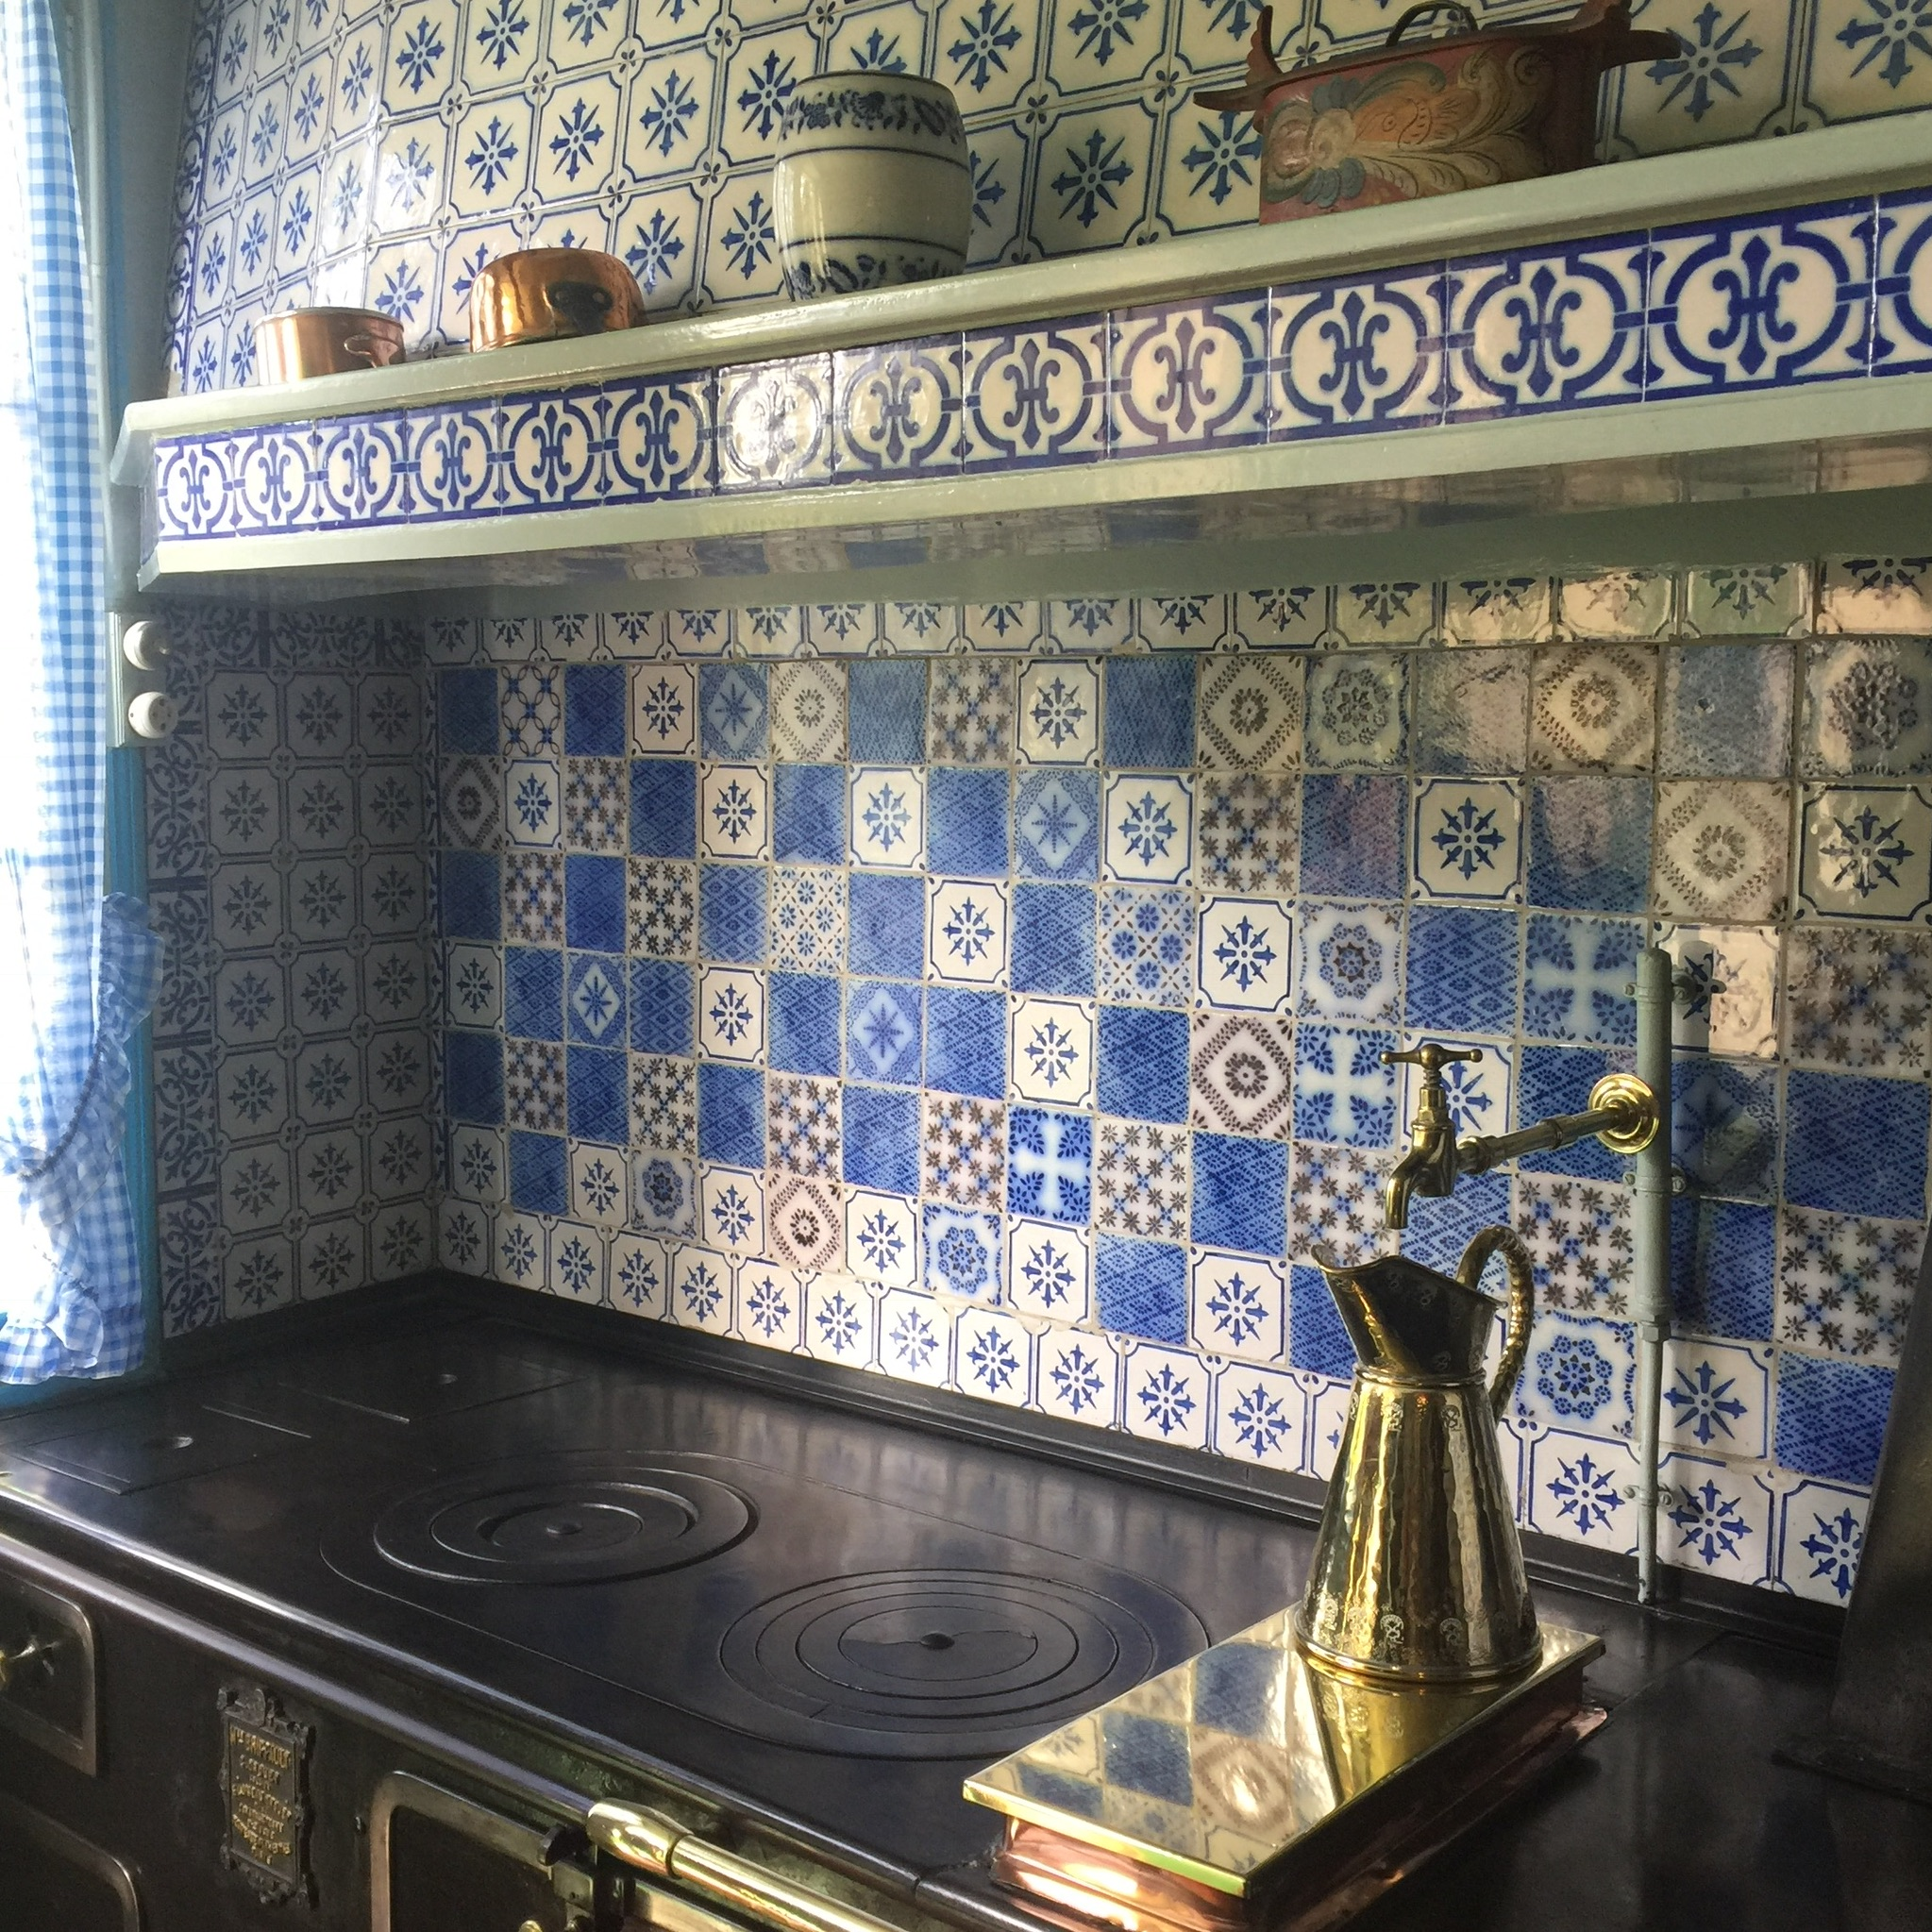 The kitchen of Monet's family home